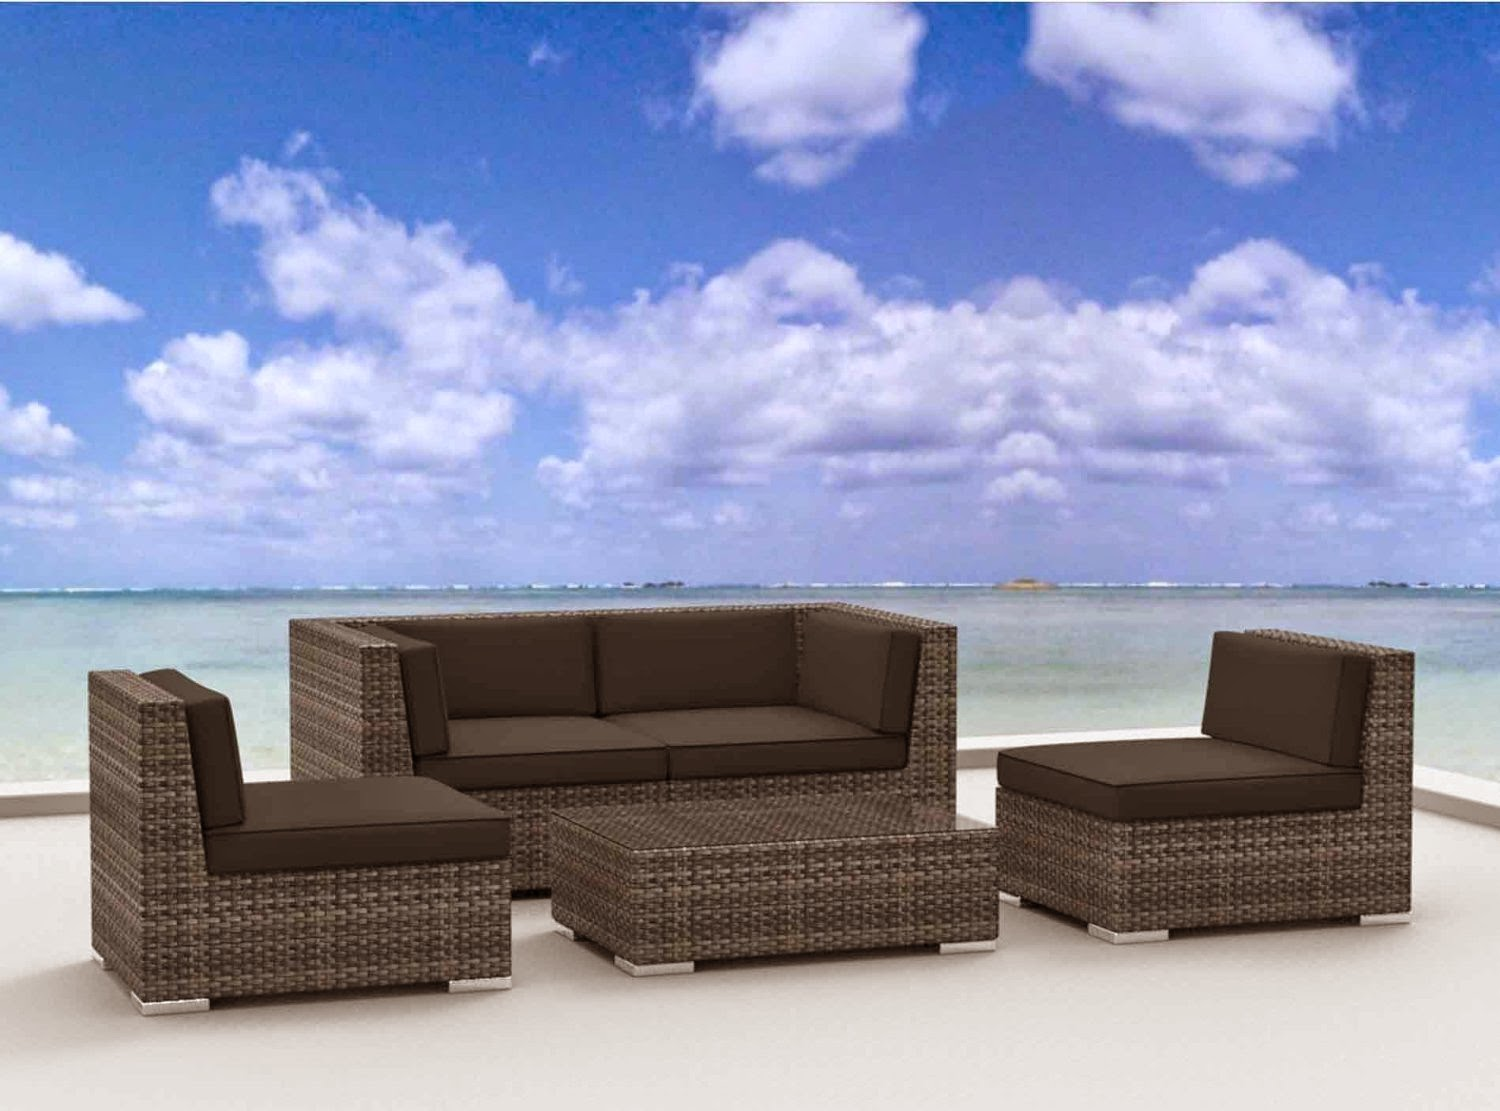 Outdoor Couches Outdoor Couch Outdoor Sectional Couch